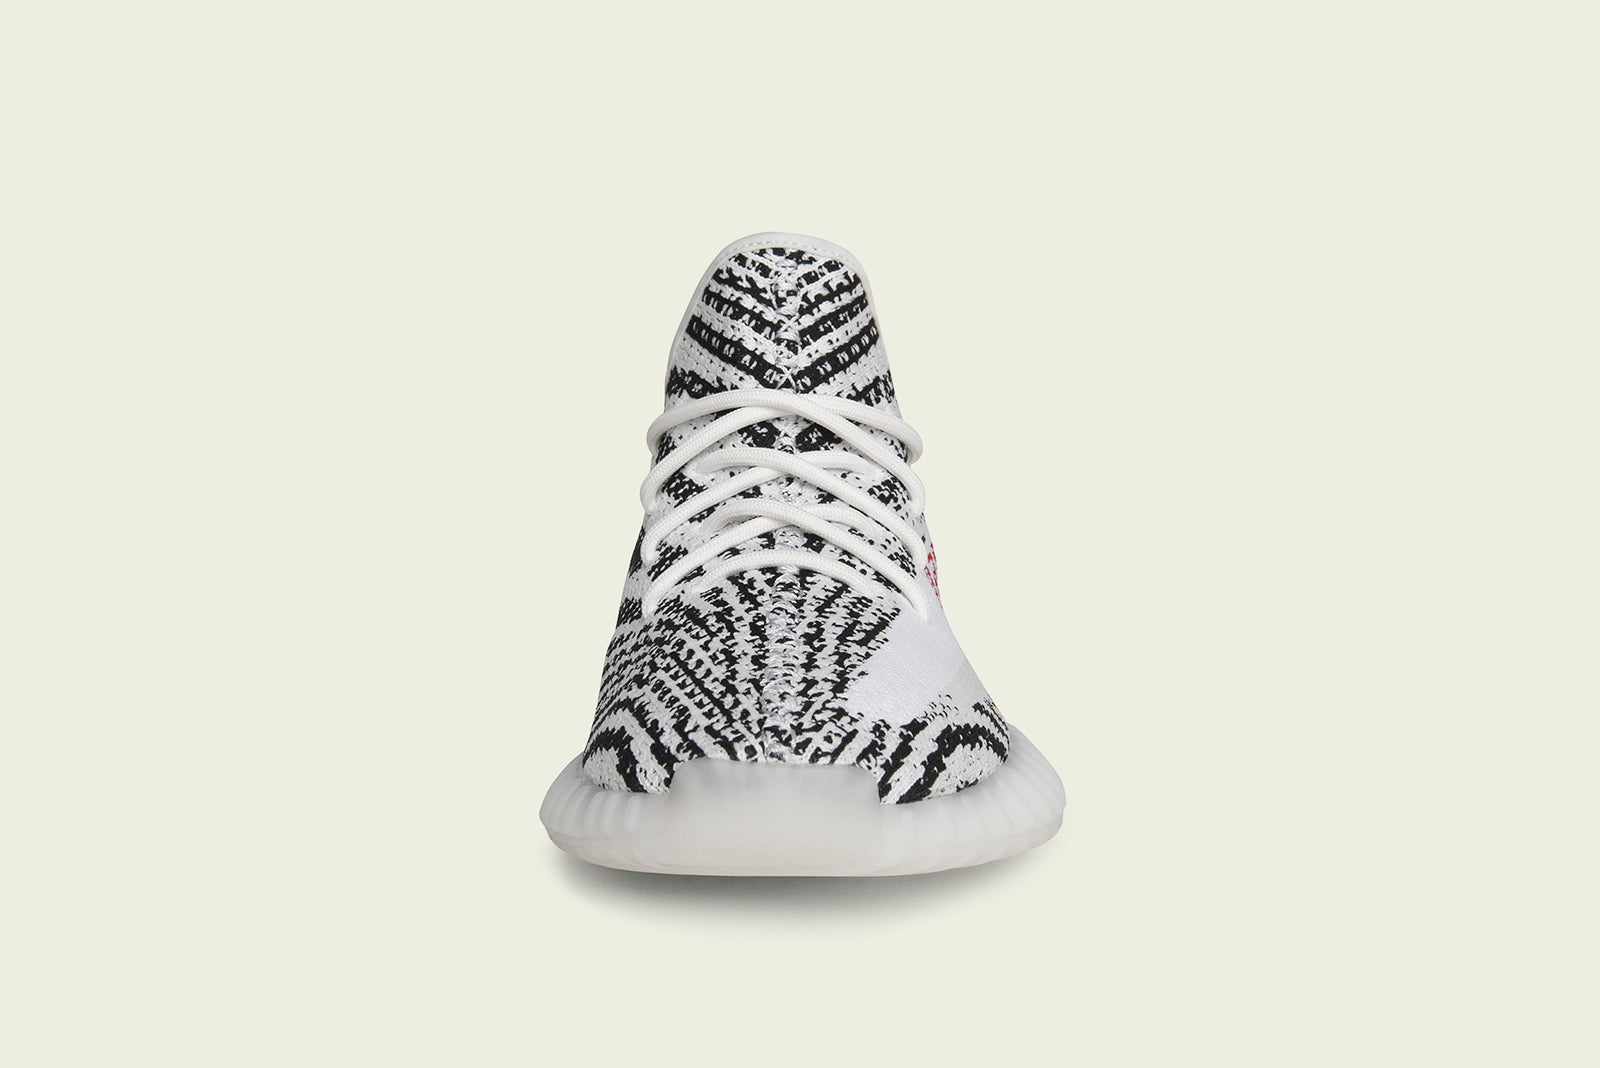 1cce3e5b316e2 adidas + Kanye West YEEZY BOOST 350 V2 CP9654 White Core Black Red Price   £180.00. Launch  TBC